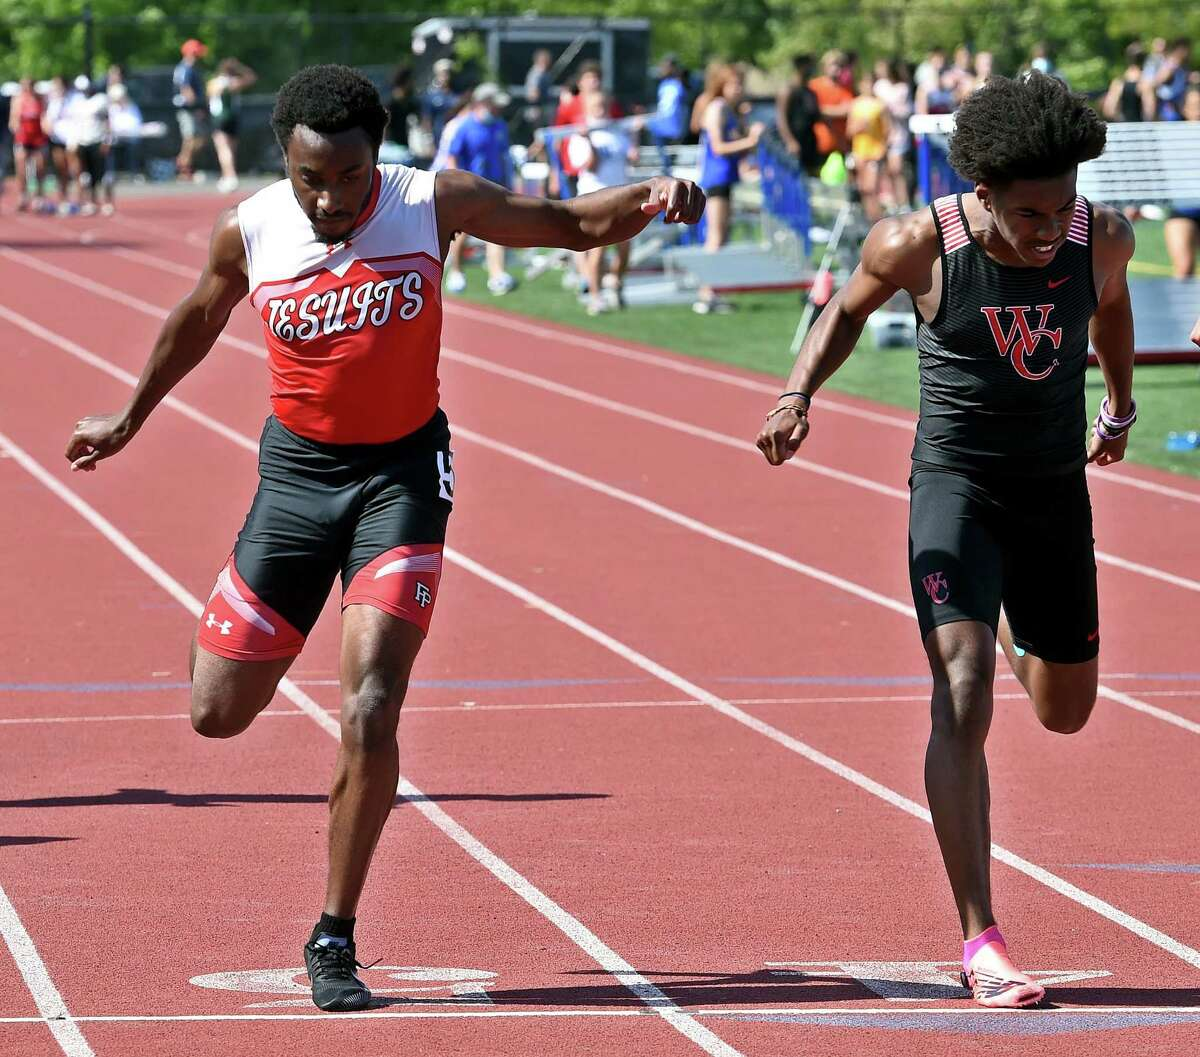 Fairfield Prep's Darren Blount, left, finishes second and Wilbur Cross' Devin Cue finishes third in the boys 100 meter dash finals at the SCC outdoor track and field championship on Tuesday at Bowen Field in New Haven.